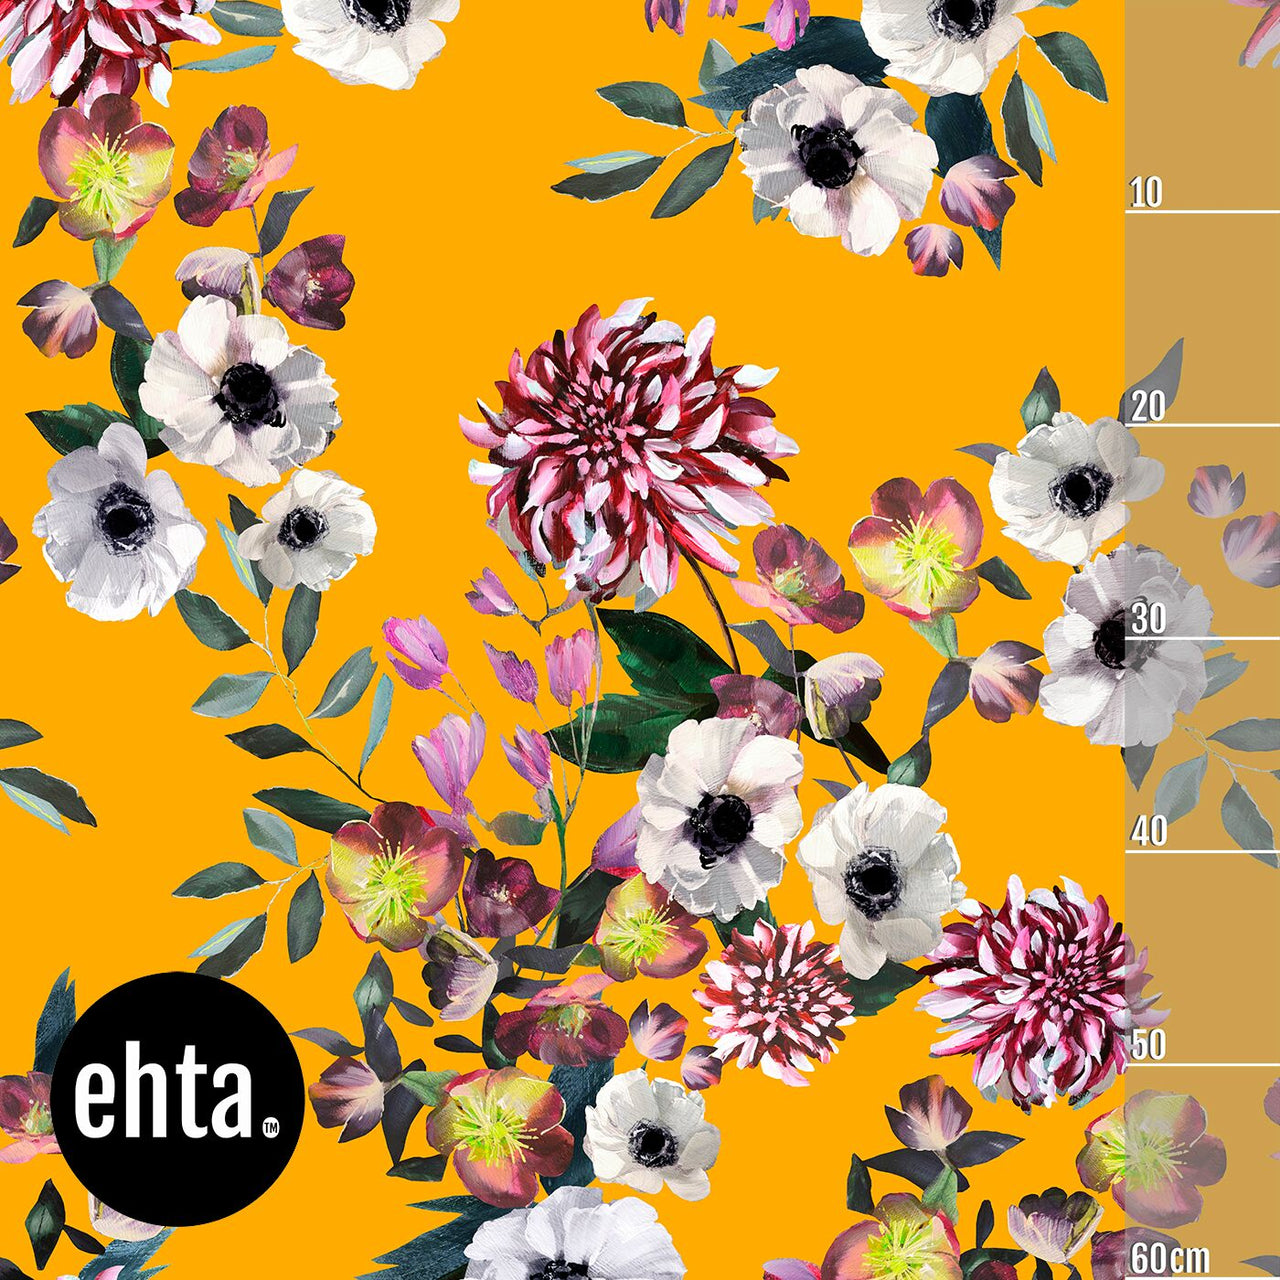 Baroque Flowers Vol 2 Organic Stretch French Terry, Ochre by Ehta